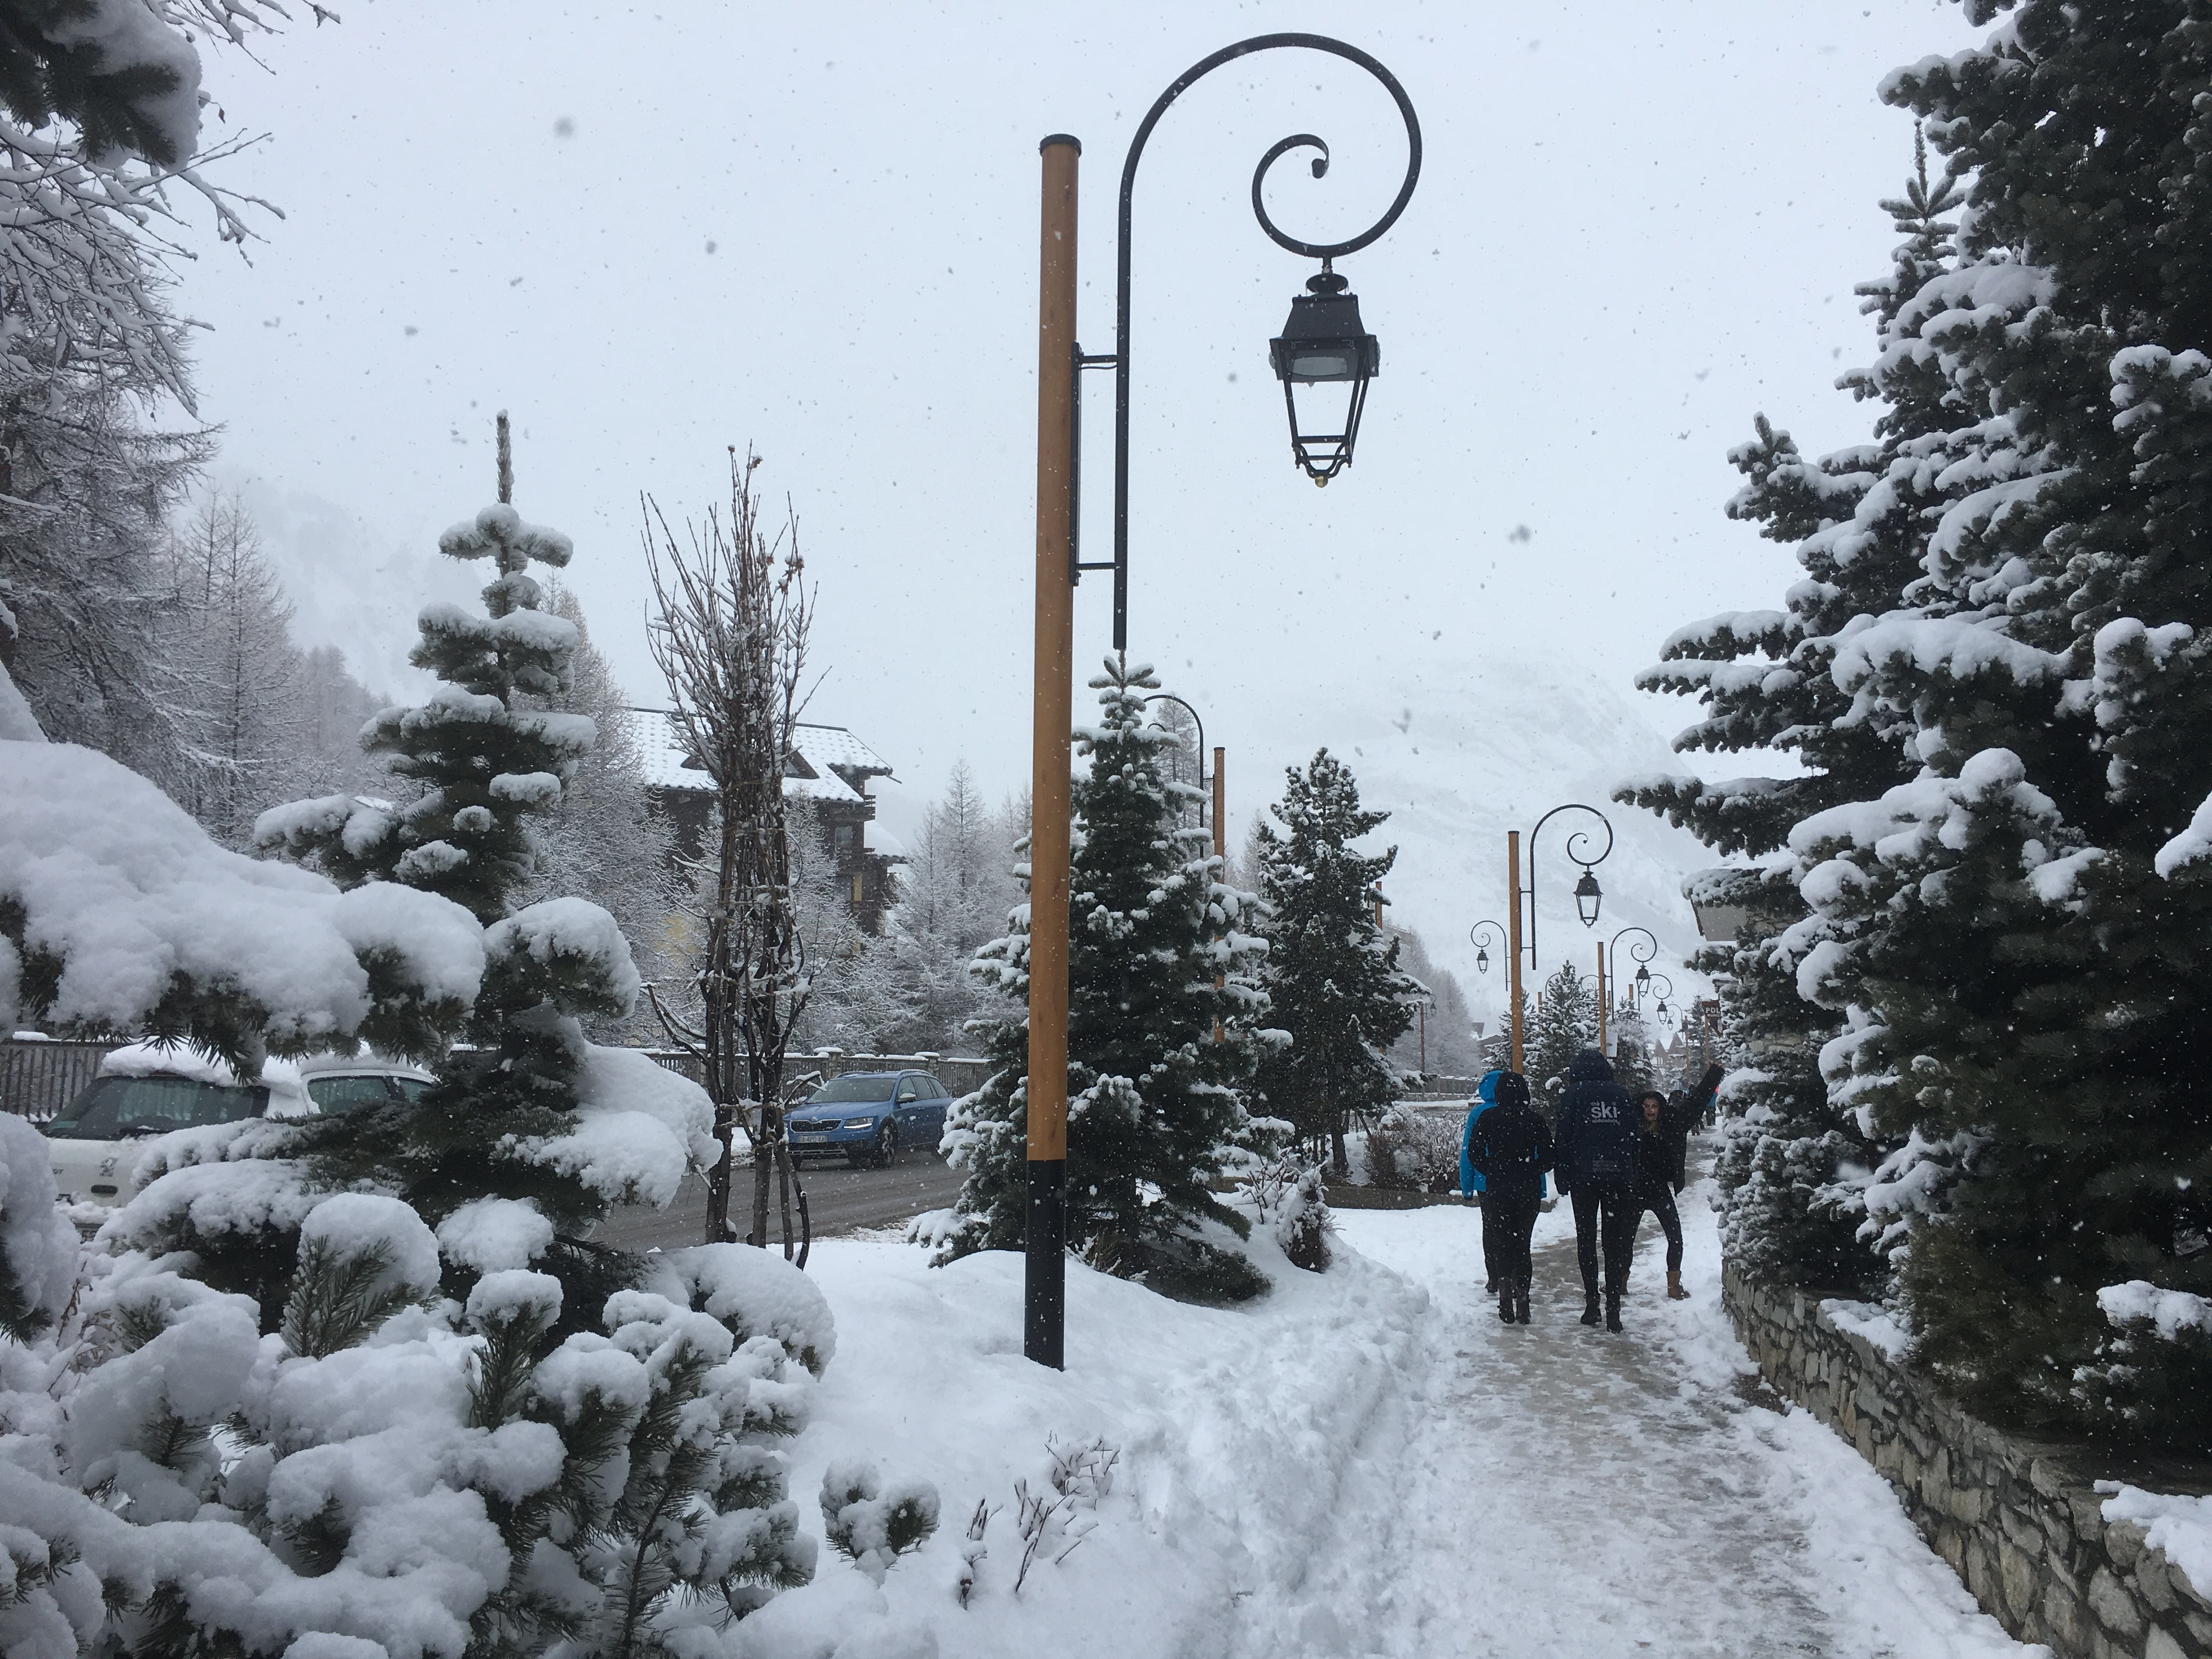 Ski Total | Snowy scenes in val d'Isere - trees coated in snow and people walking down a snowy street